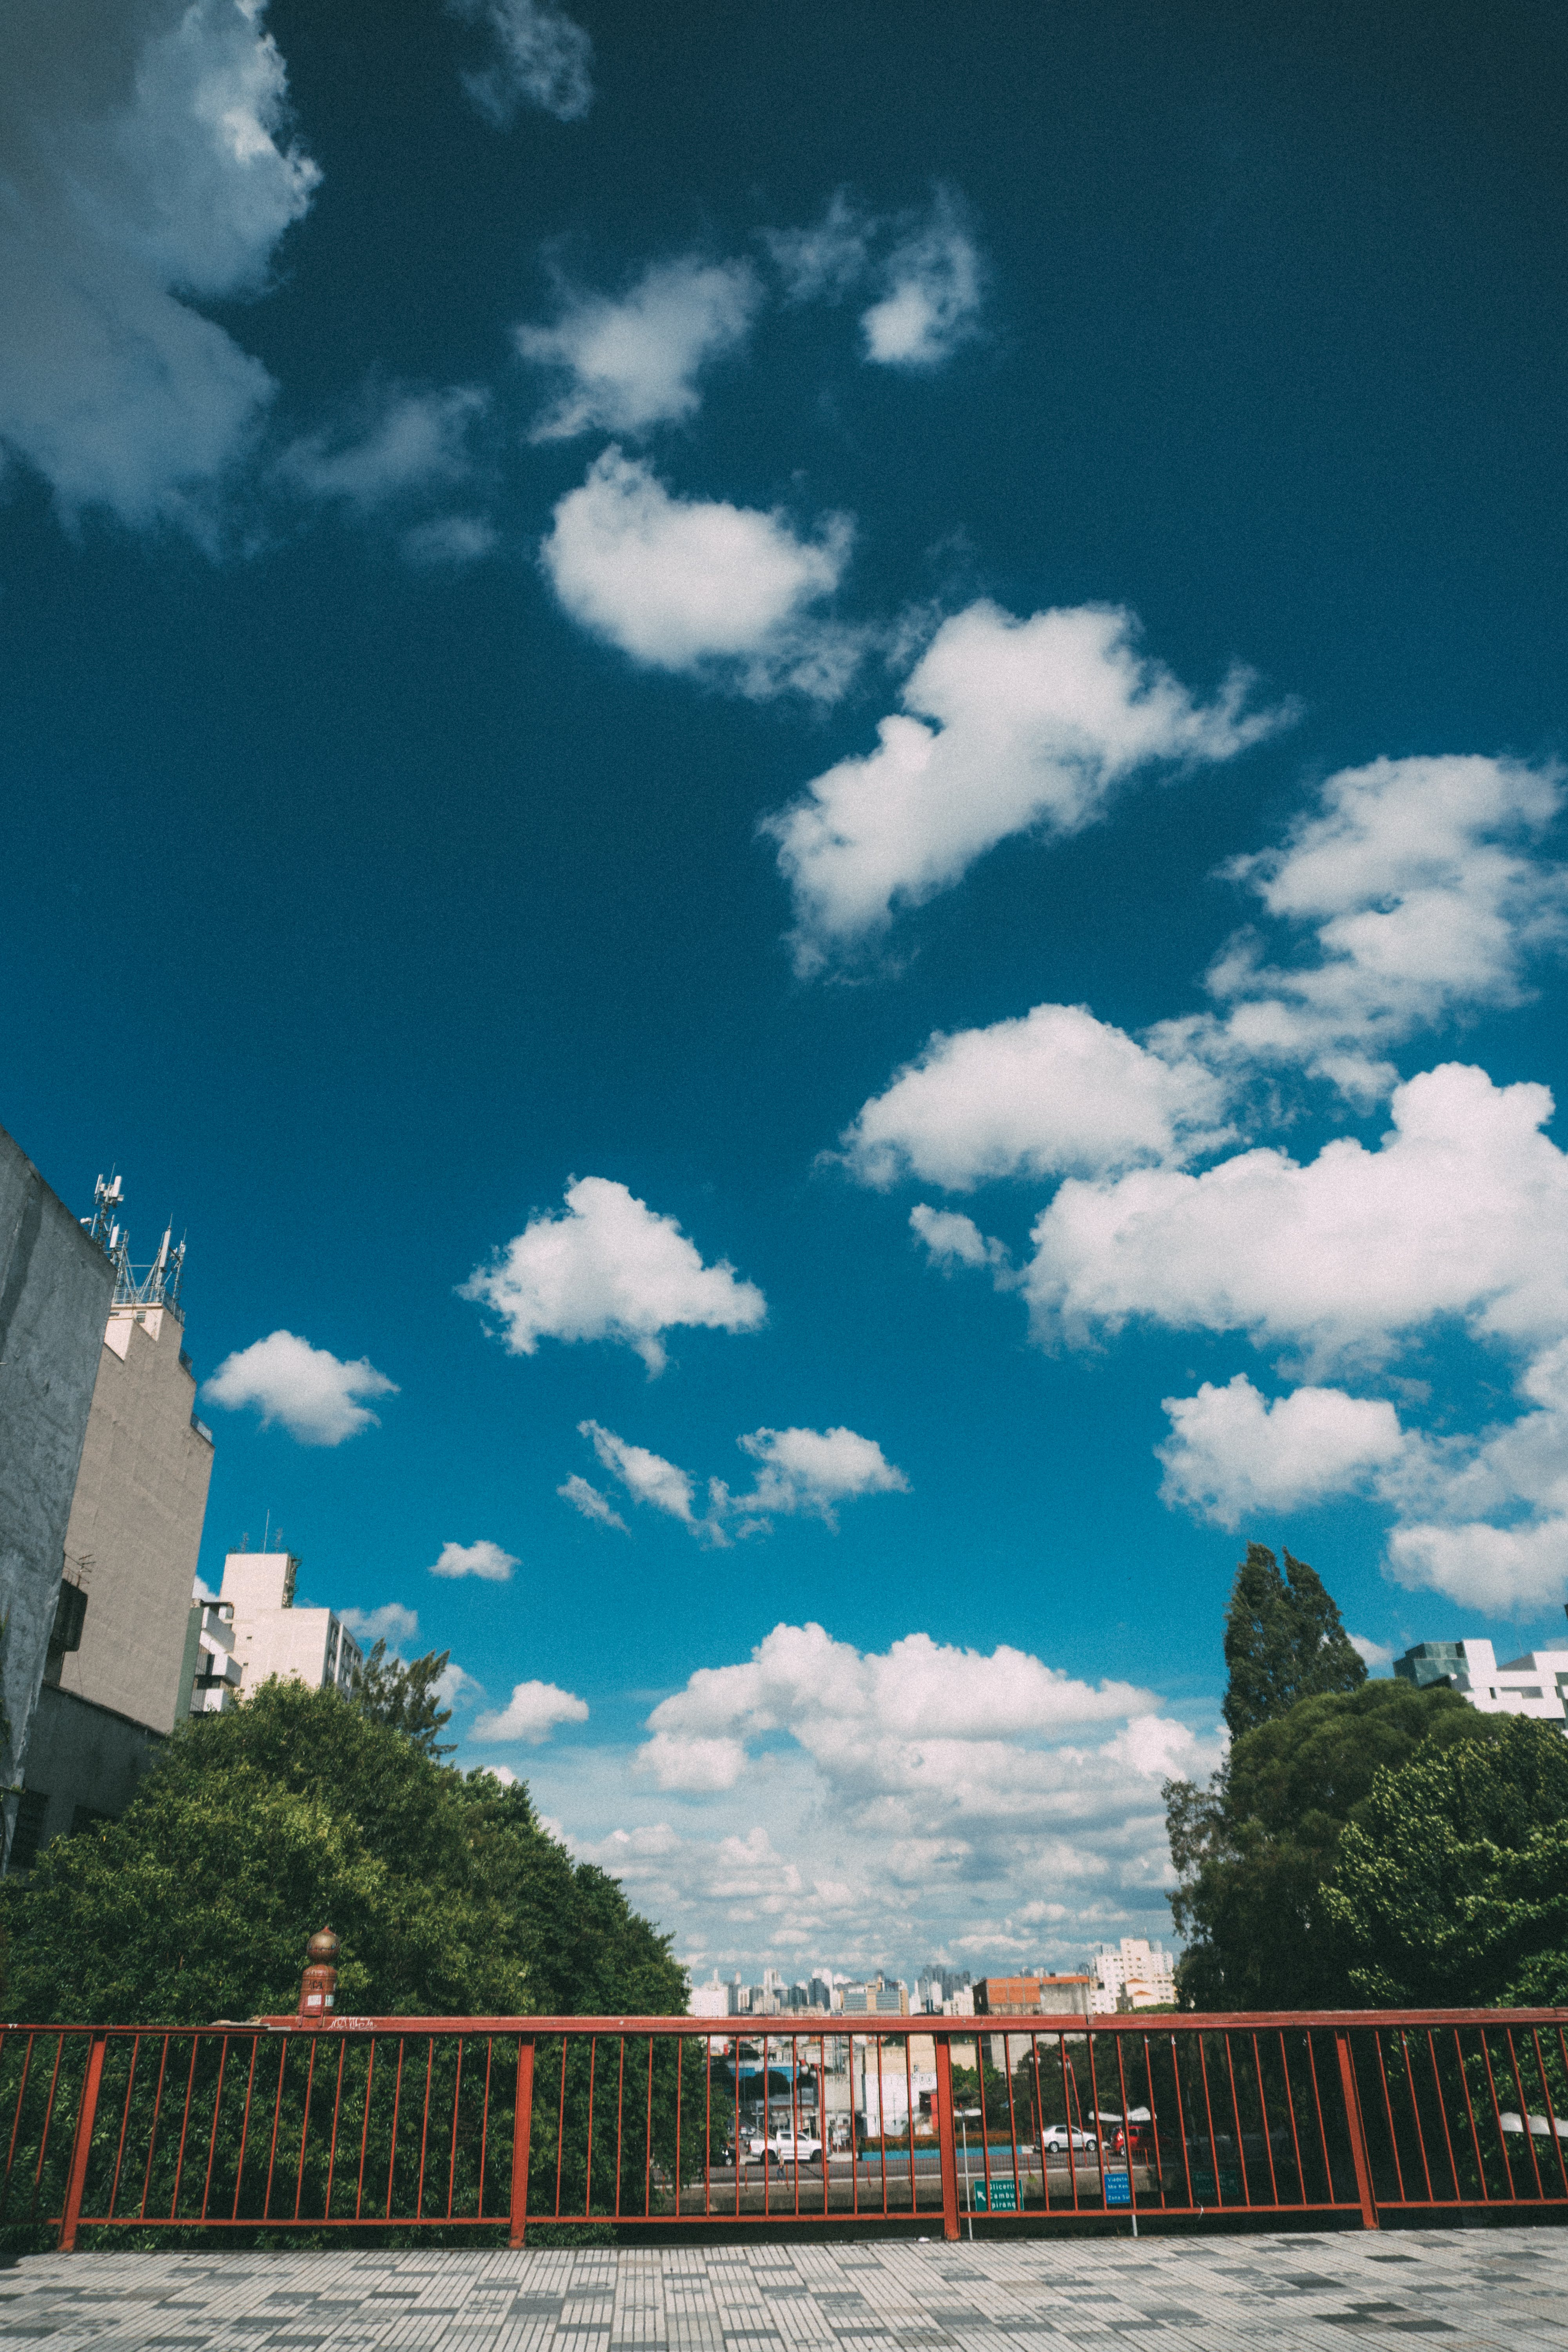 Free stock photo of city, landscape, nature, clouds